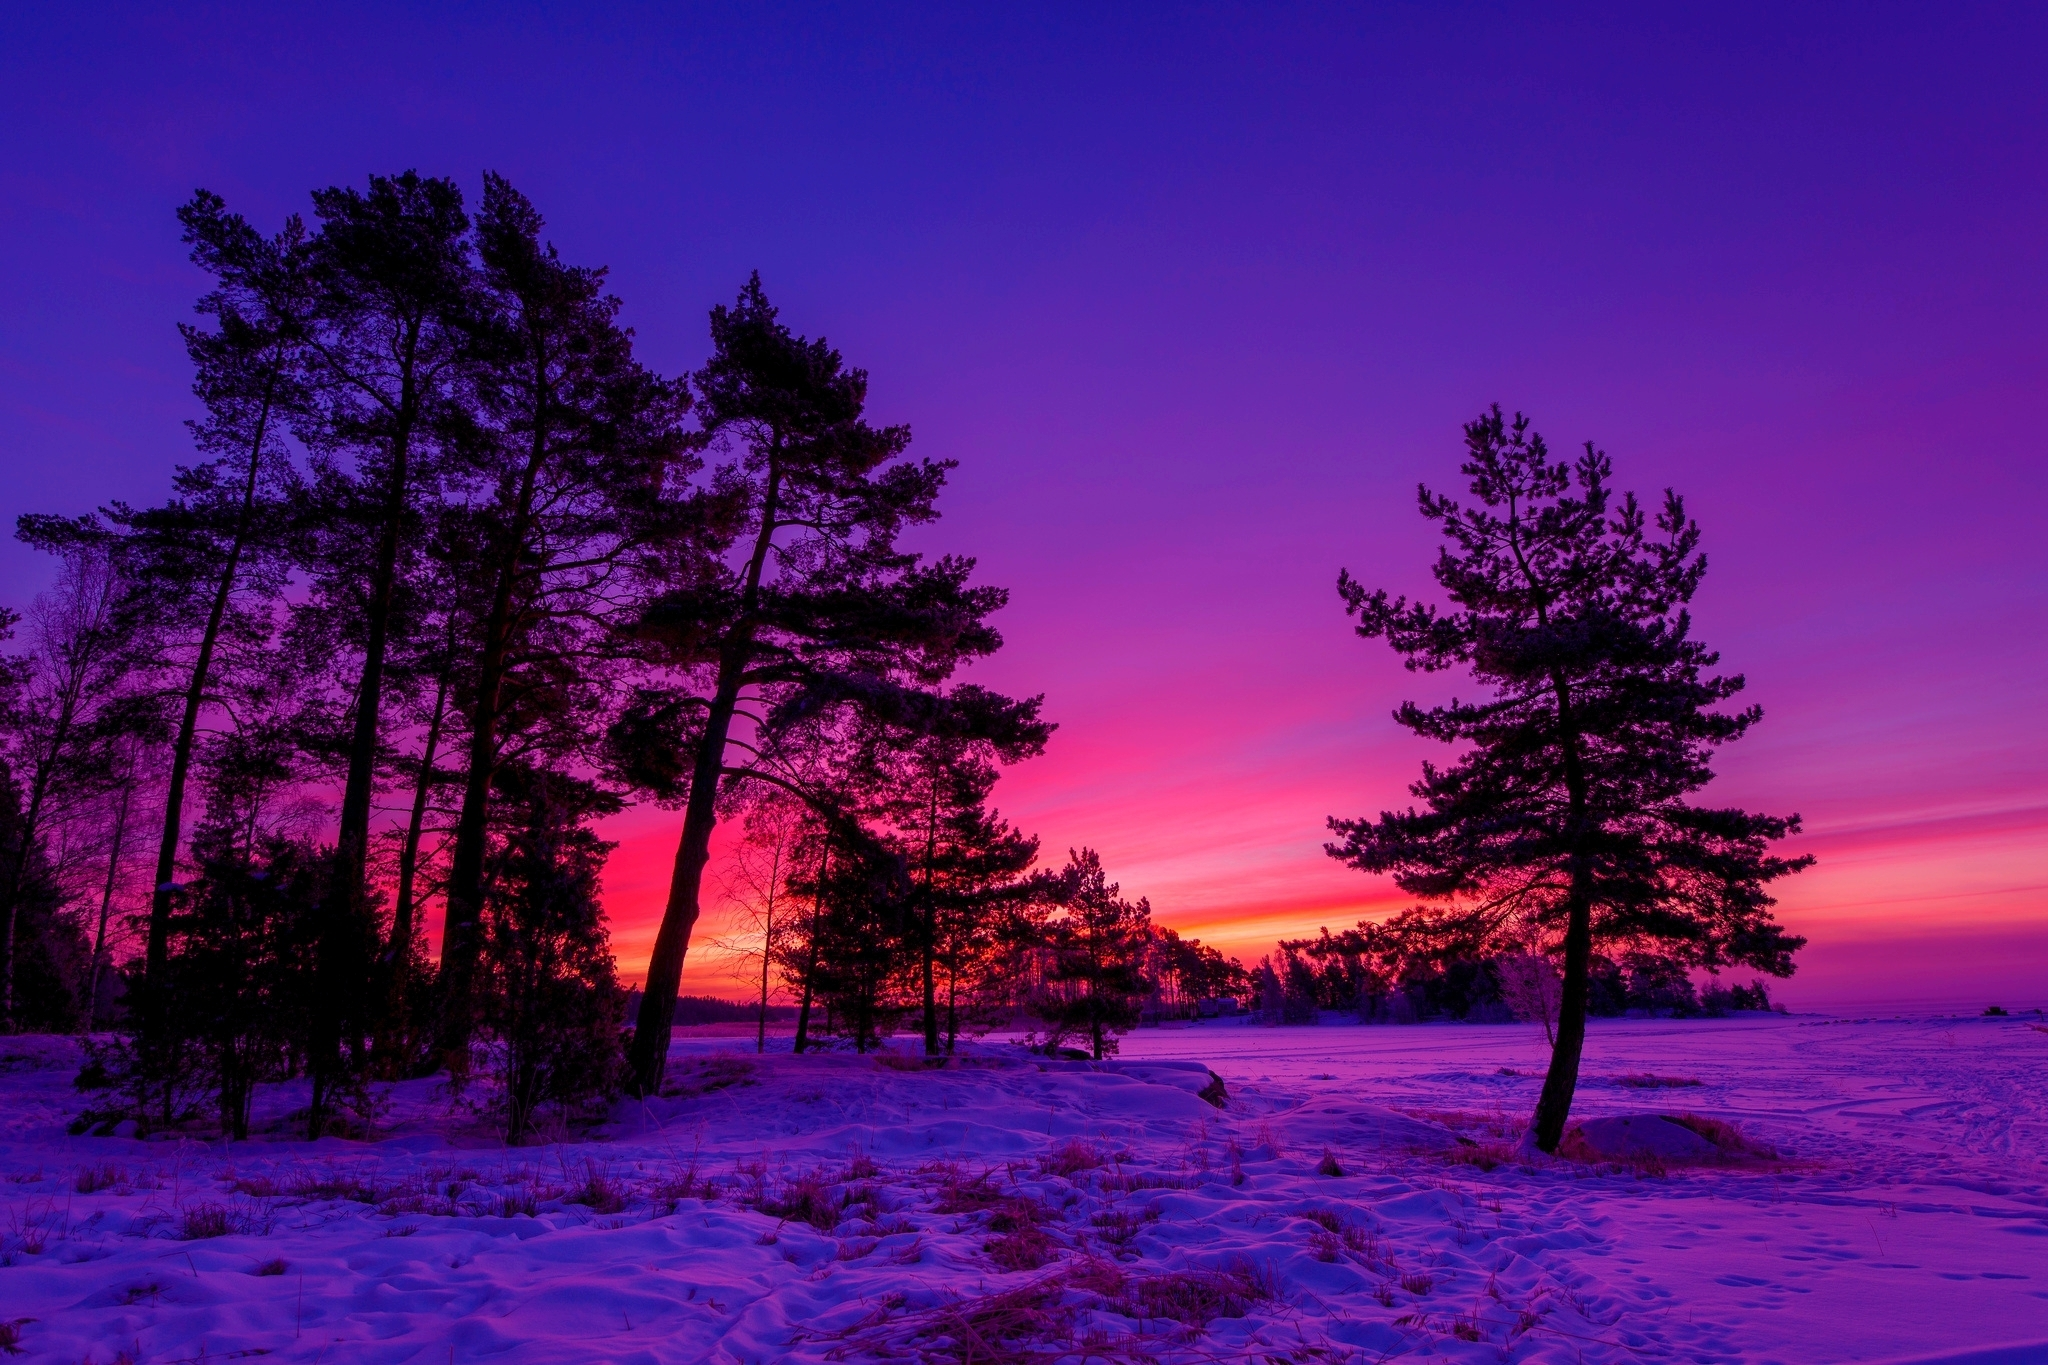 hd awesome winter sunset desktop wallpapers - hd free wallpaper